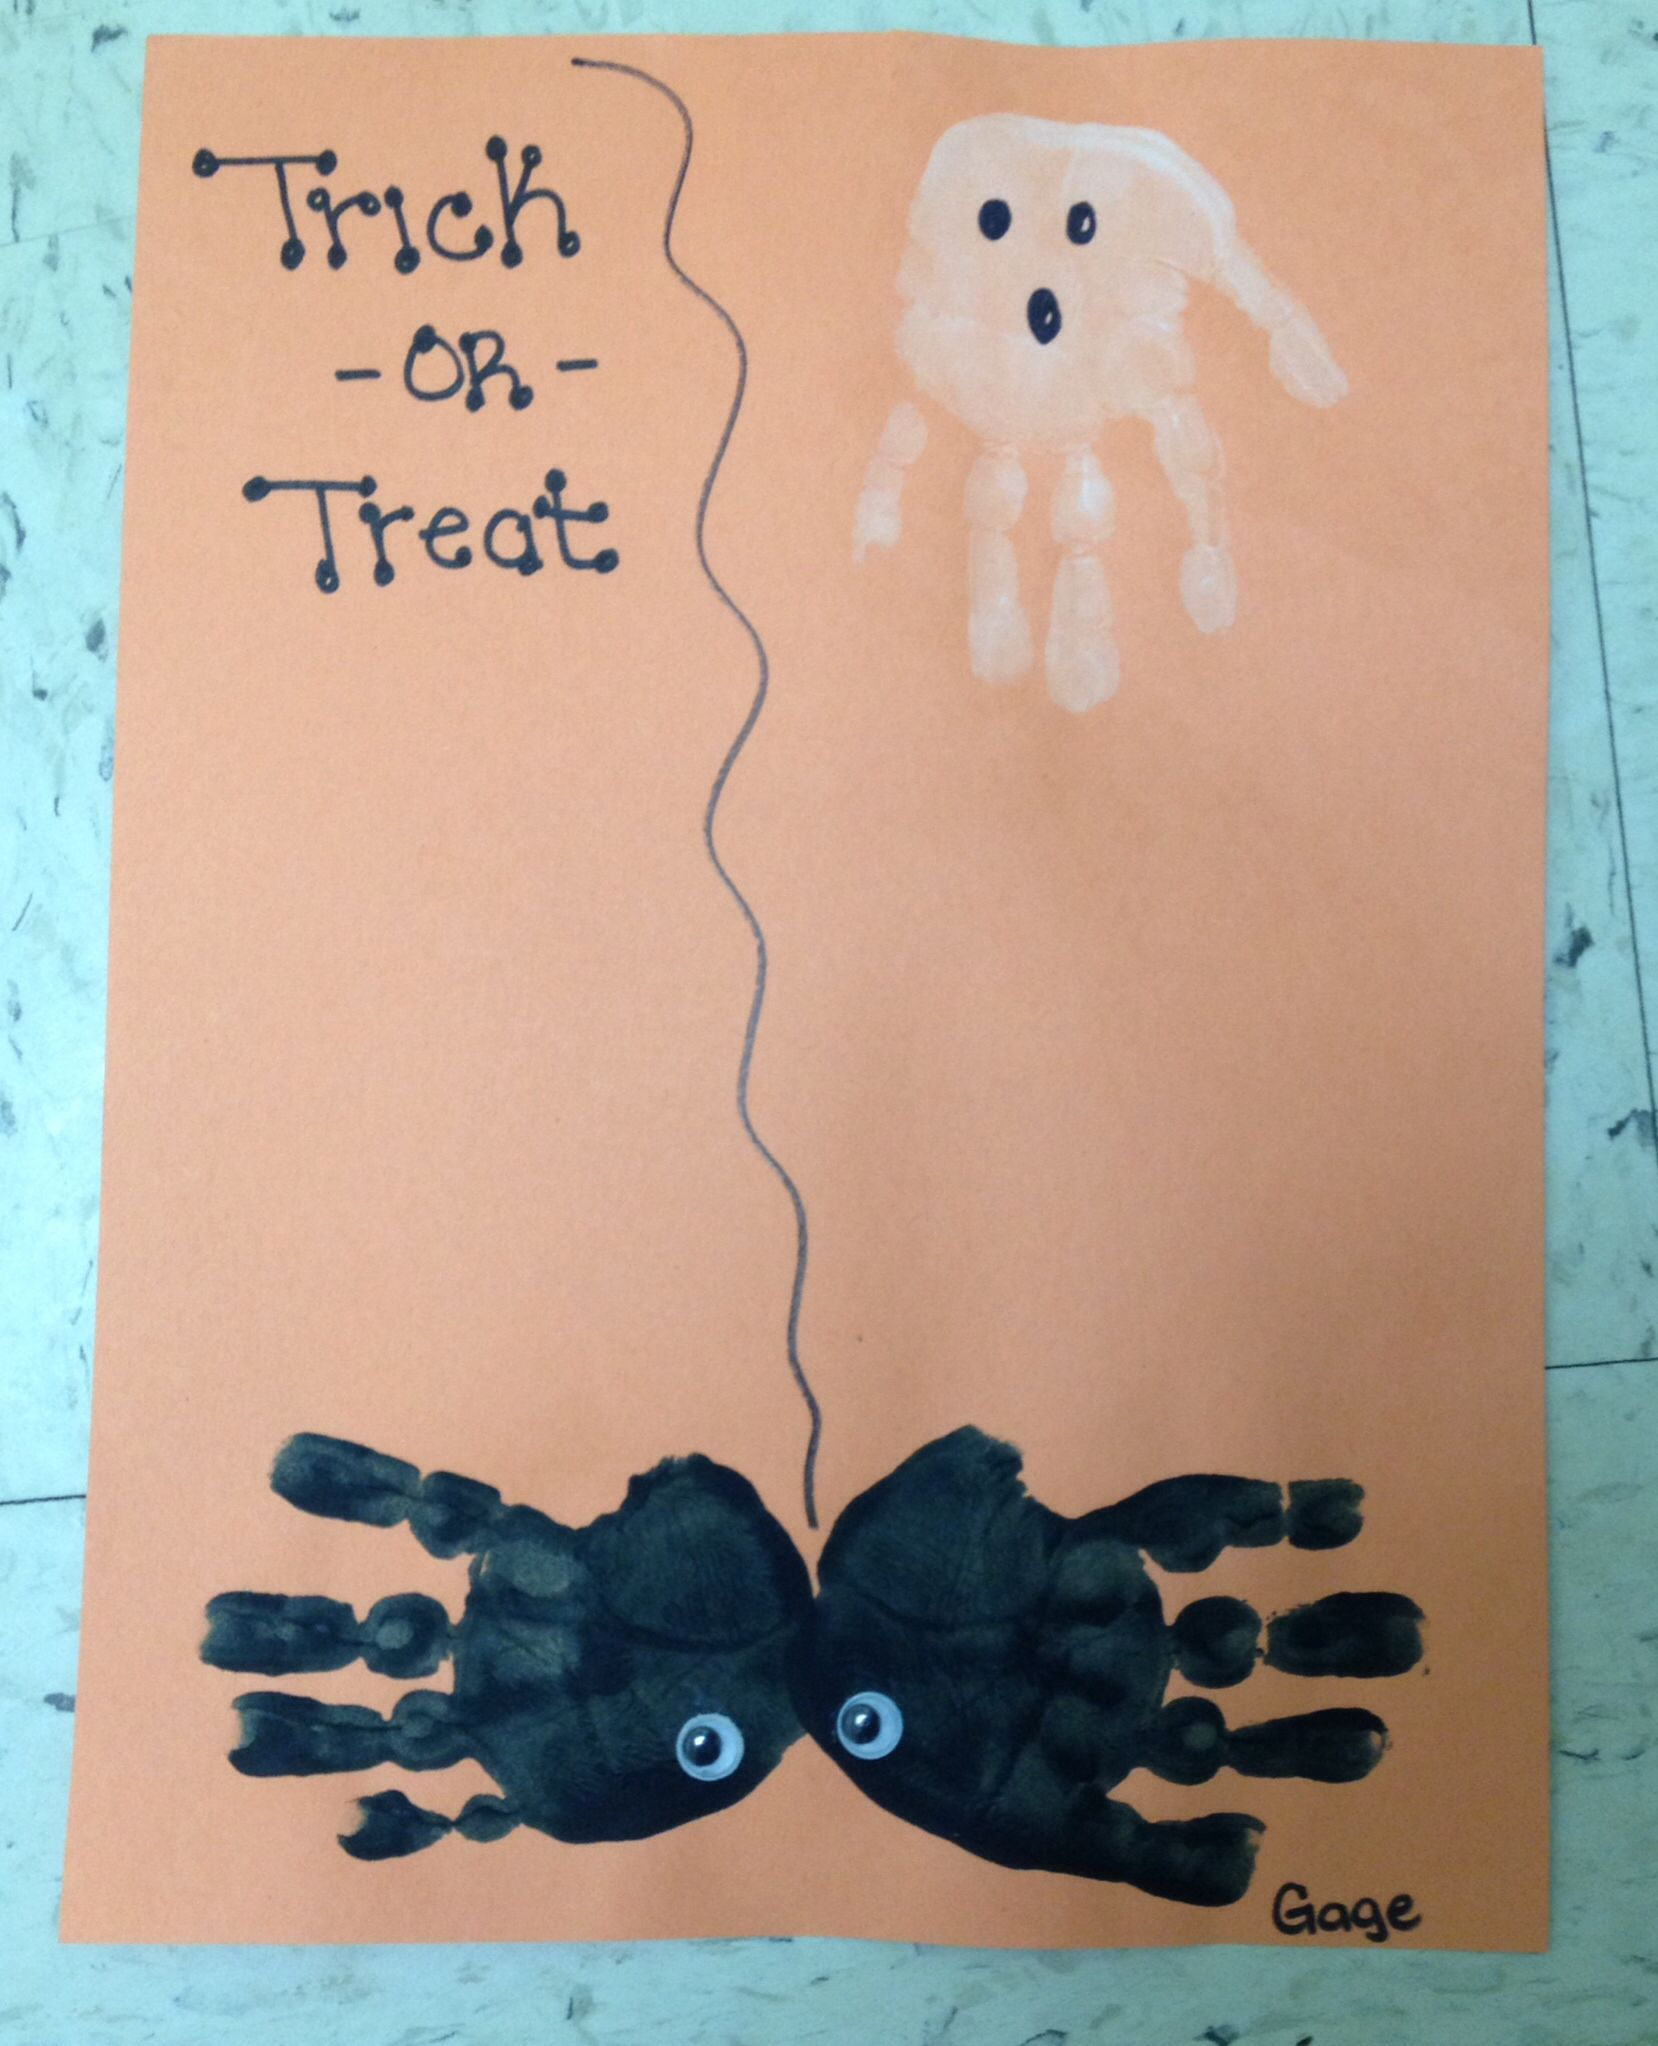 Spooky Ghost And Spider My Two Year Old Students Did This Craft Using Their Hands They Really